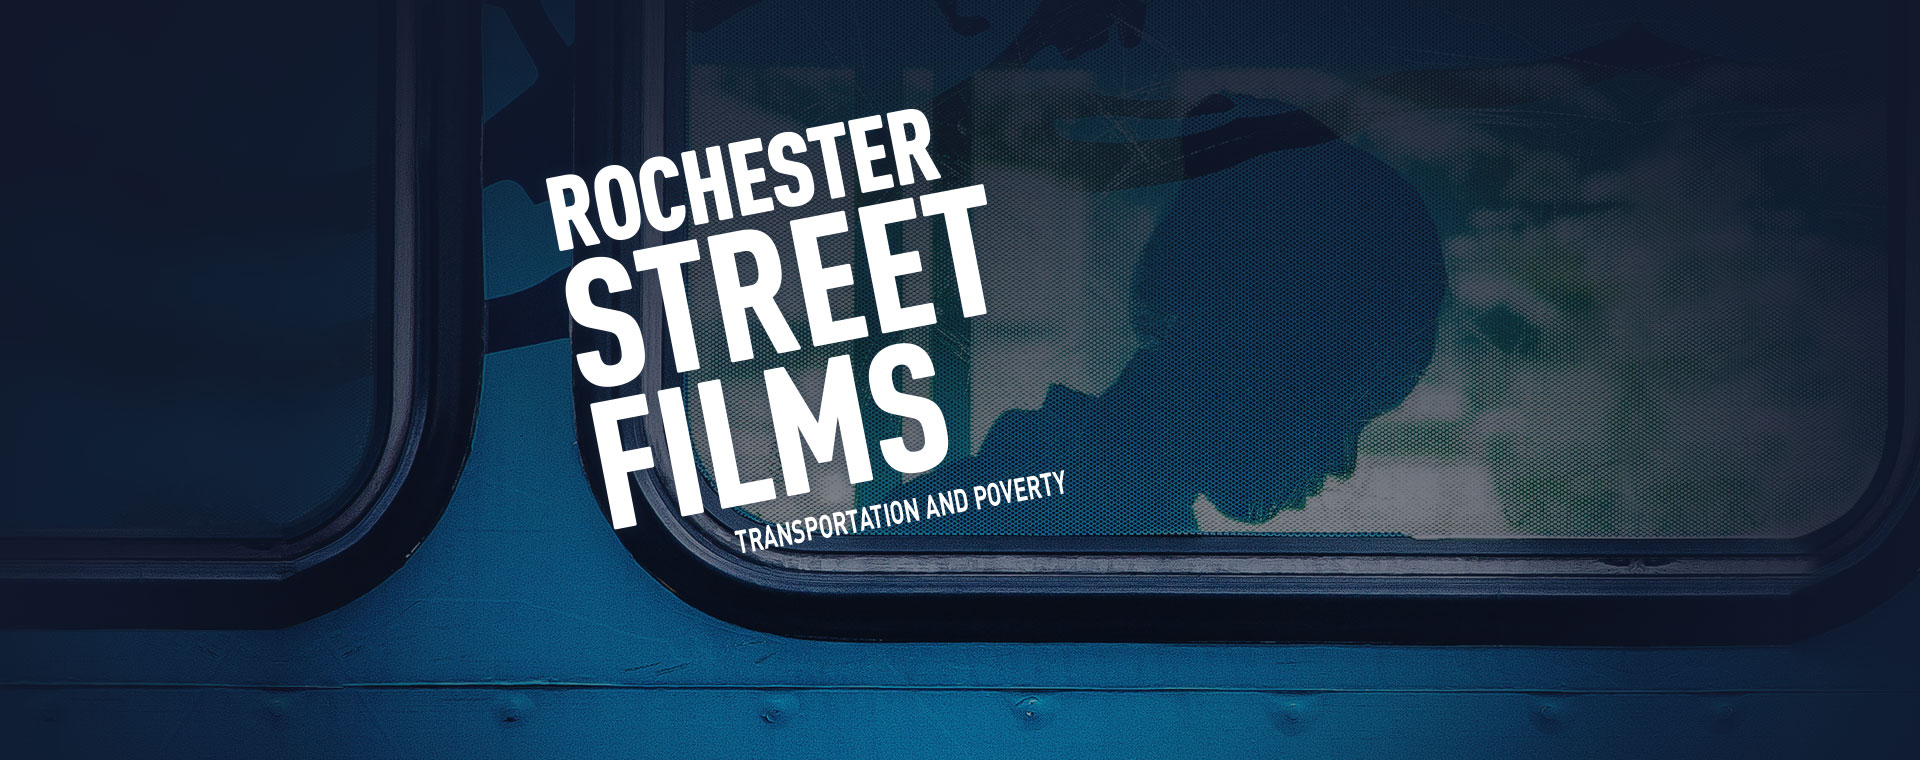 Rochester Street Films –Transportation and Poverty